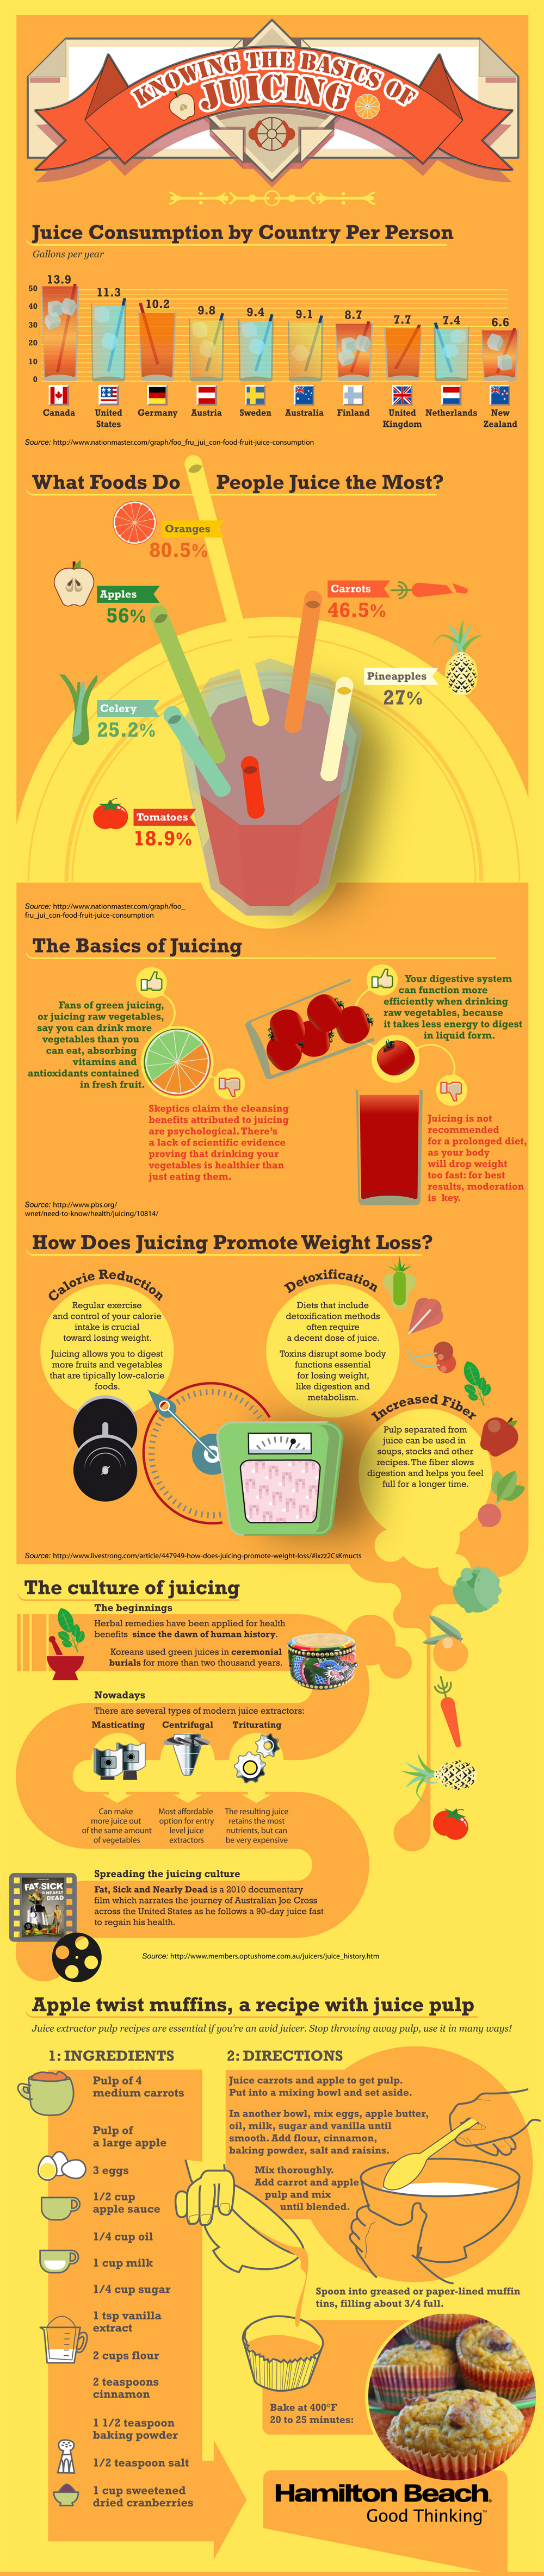 The Basics of Juicing Infographic - An Infographic from Infographics Showcase